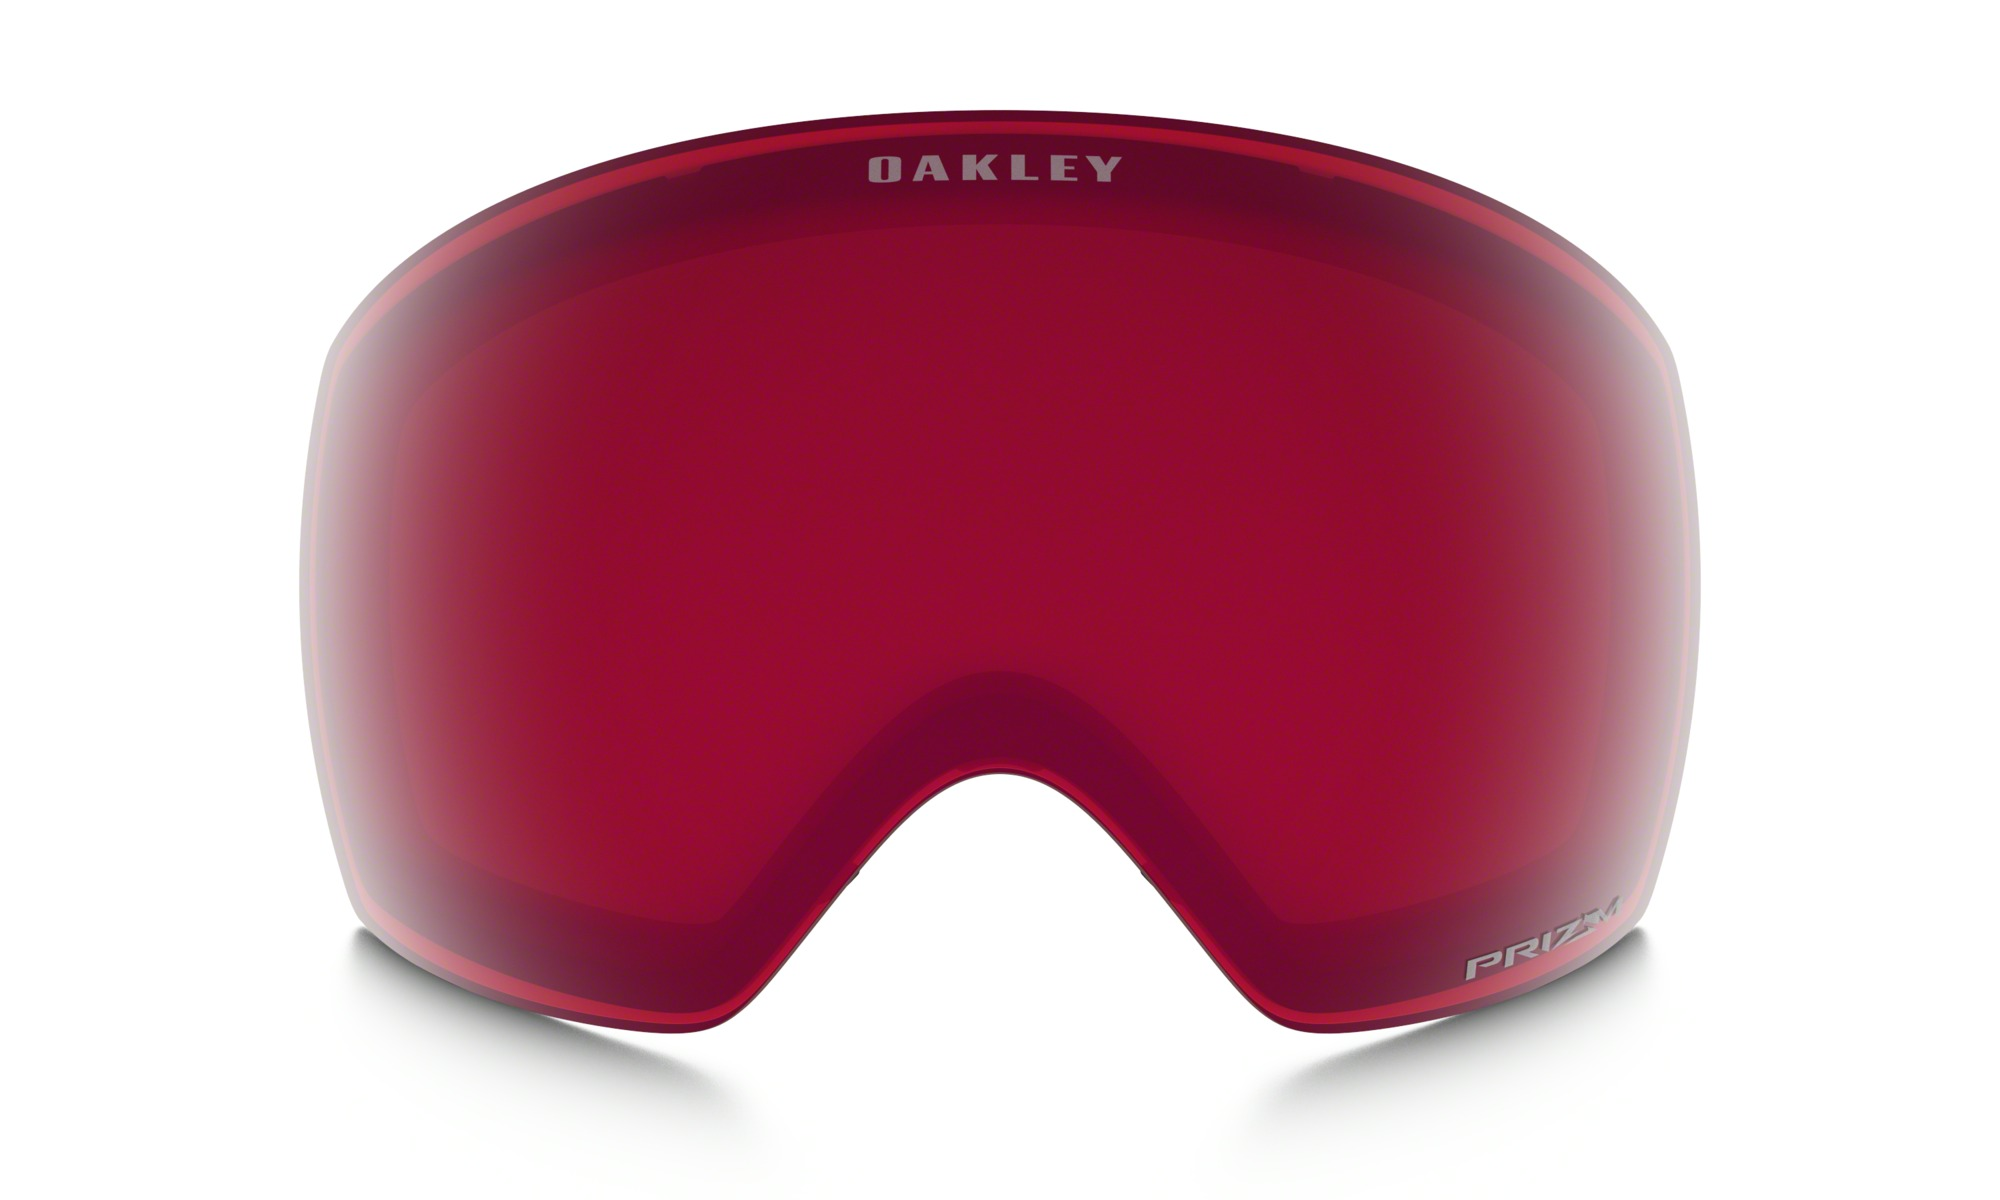 Oakley Goggle Lens Color Tint Guide